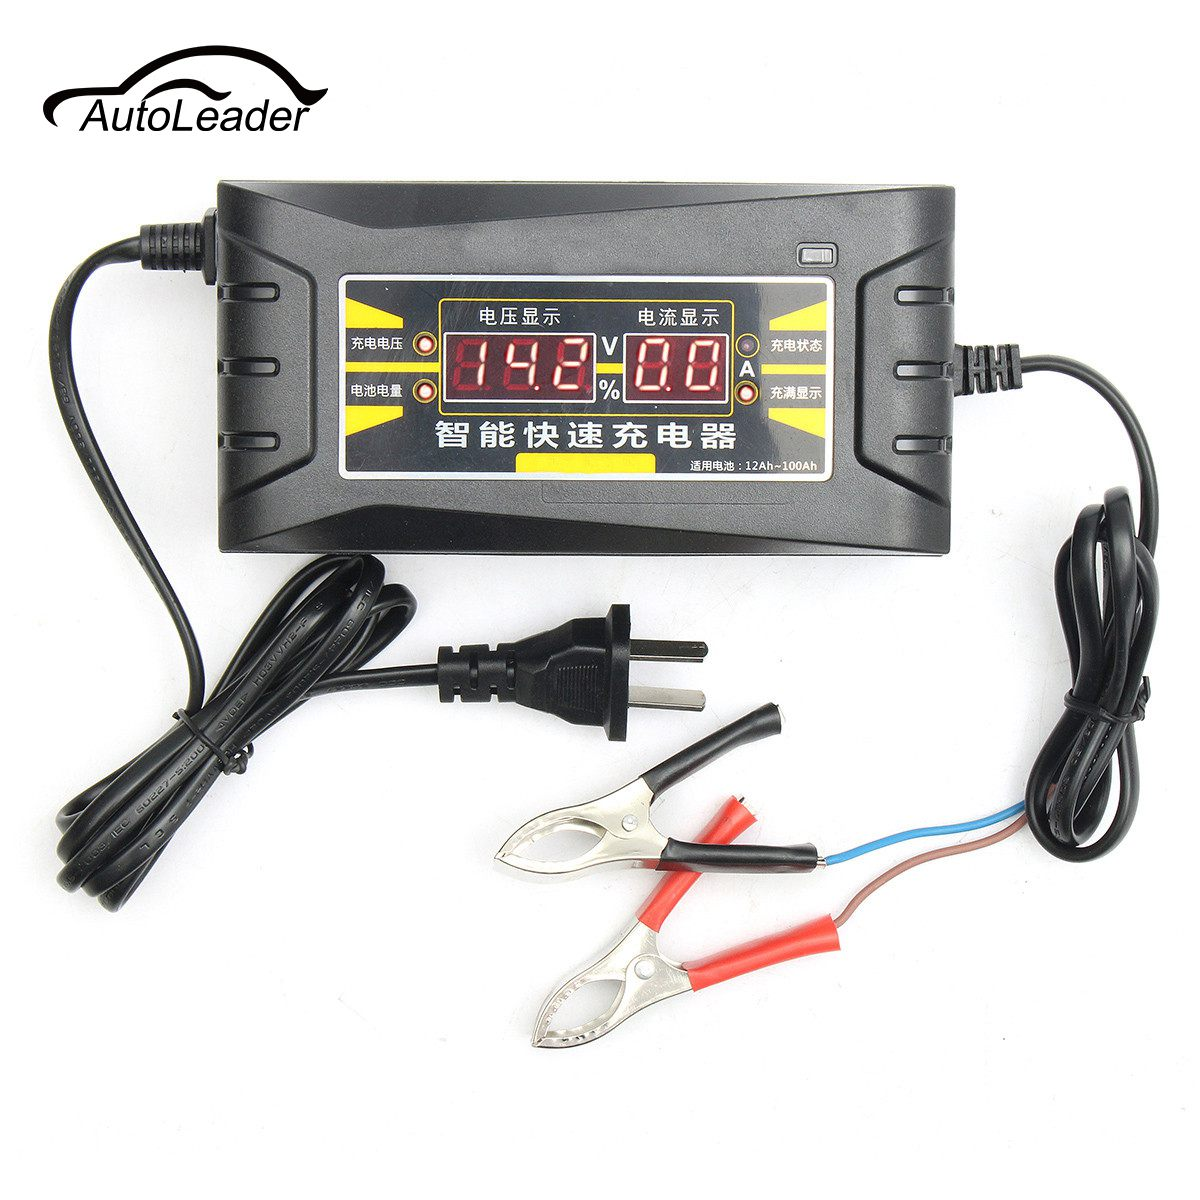 1pc 12V 6A Smart Fast Battery Charger For Car Motorcycle LCD Display